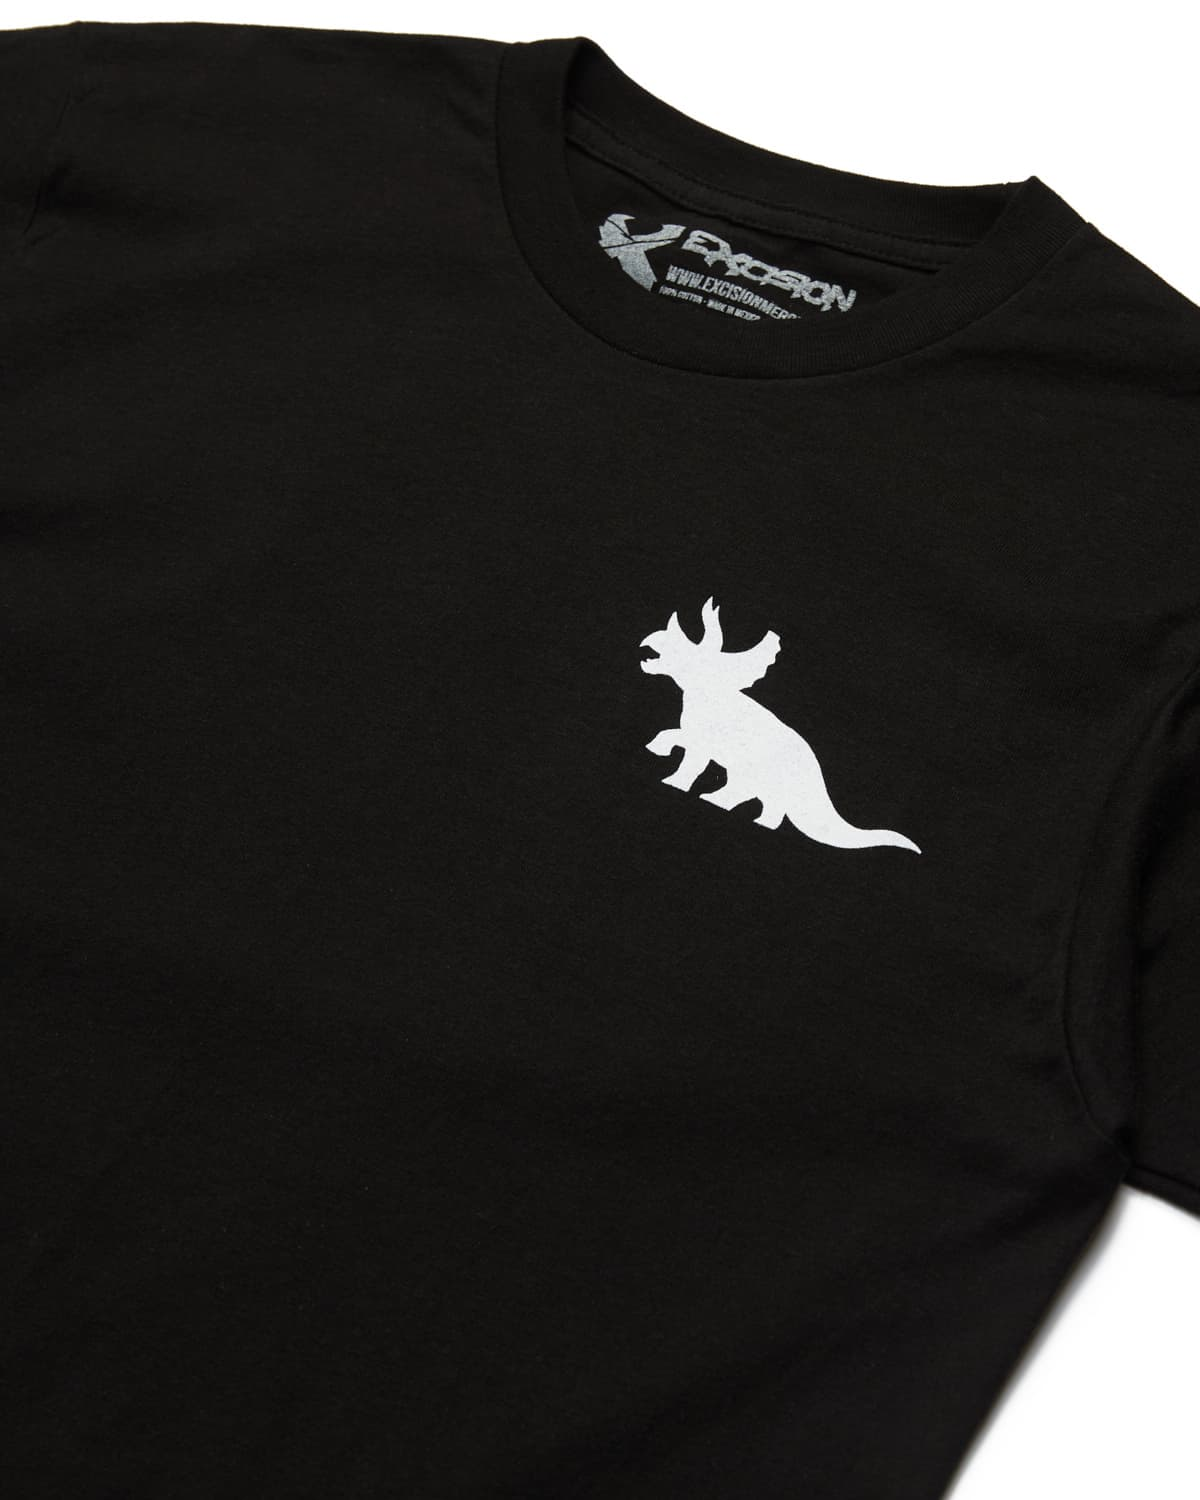 Lost Lands 'Triceratops' Tee